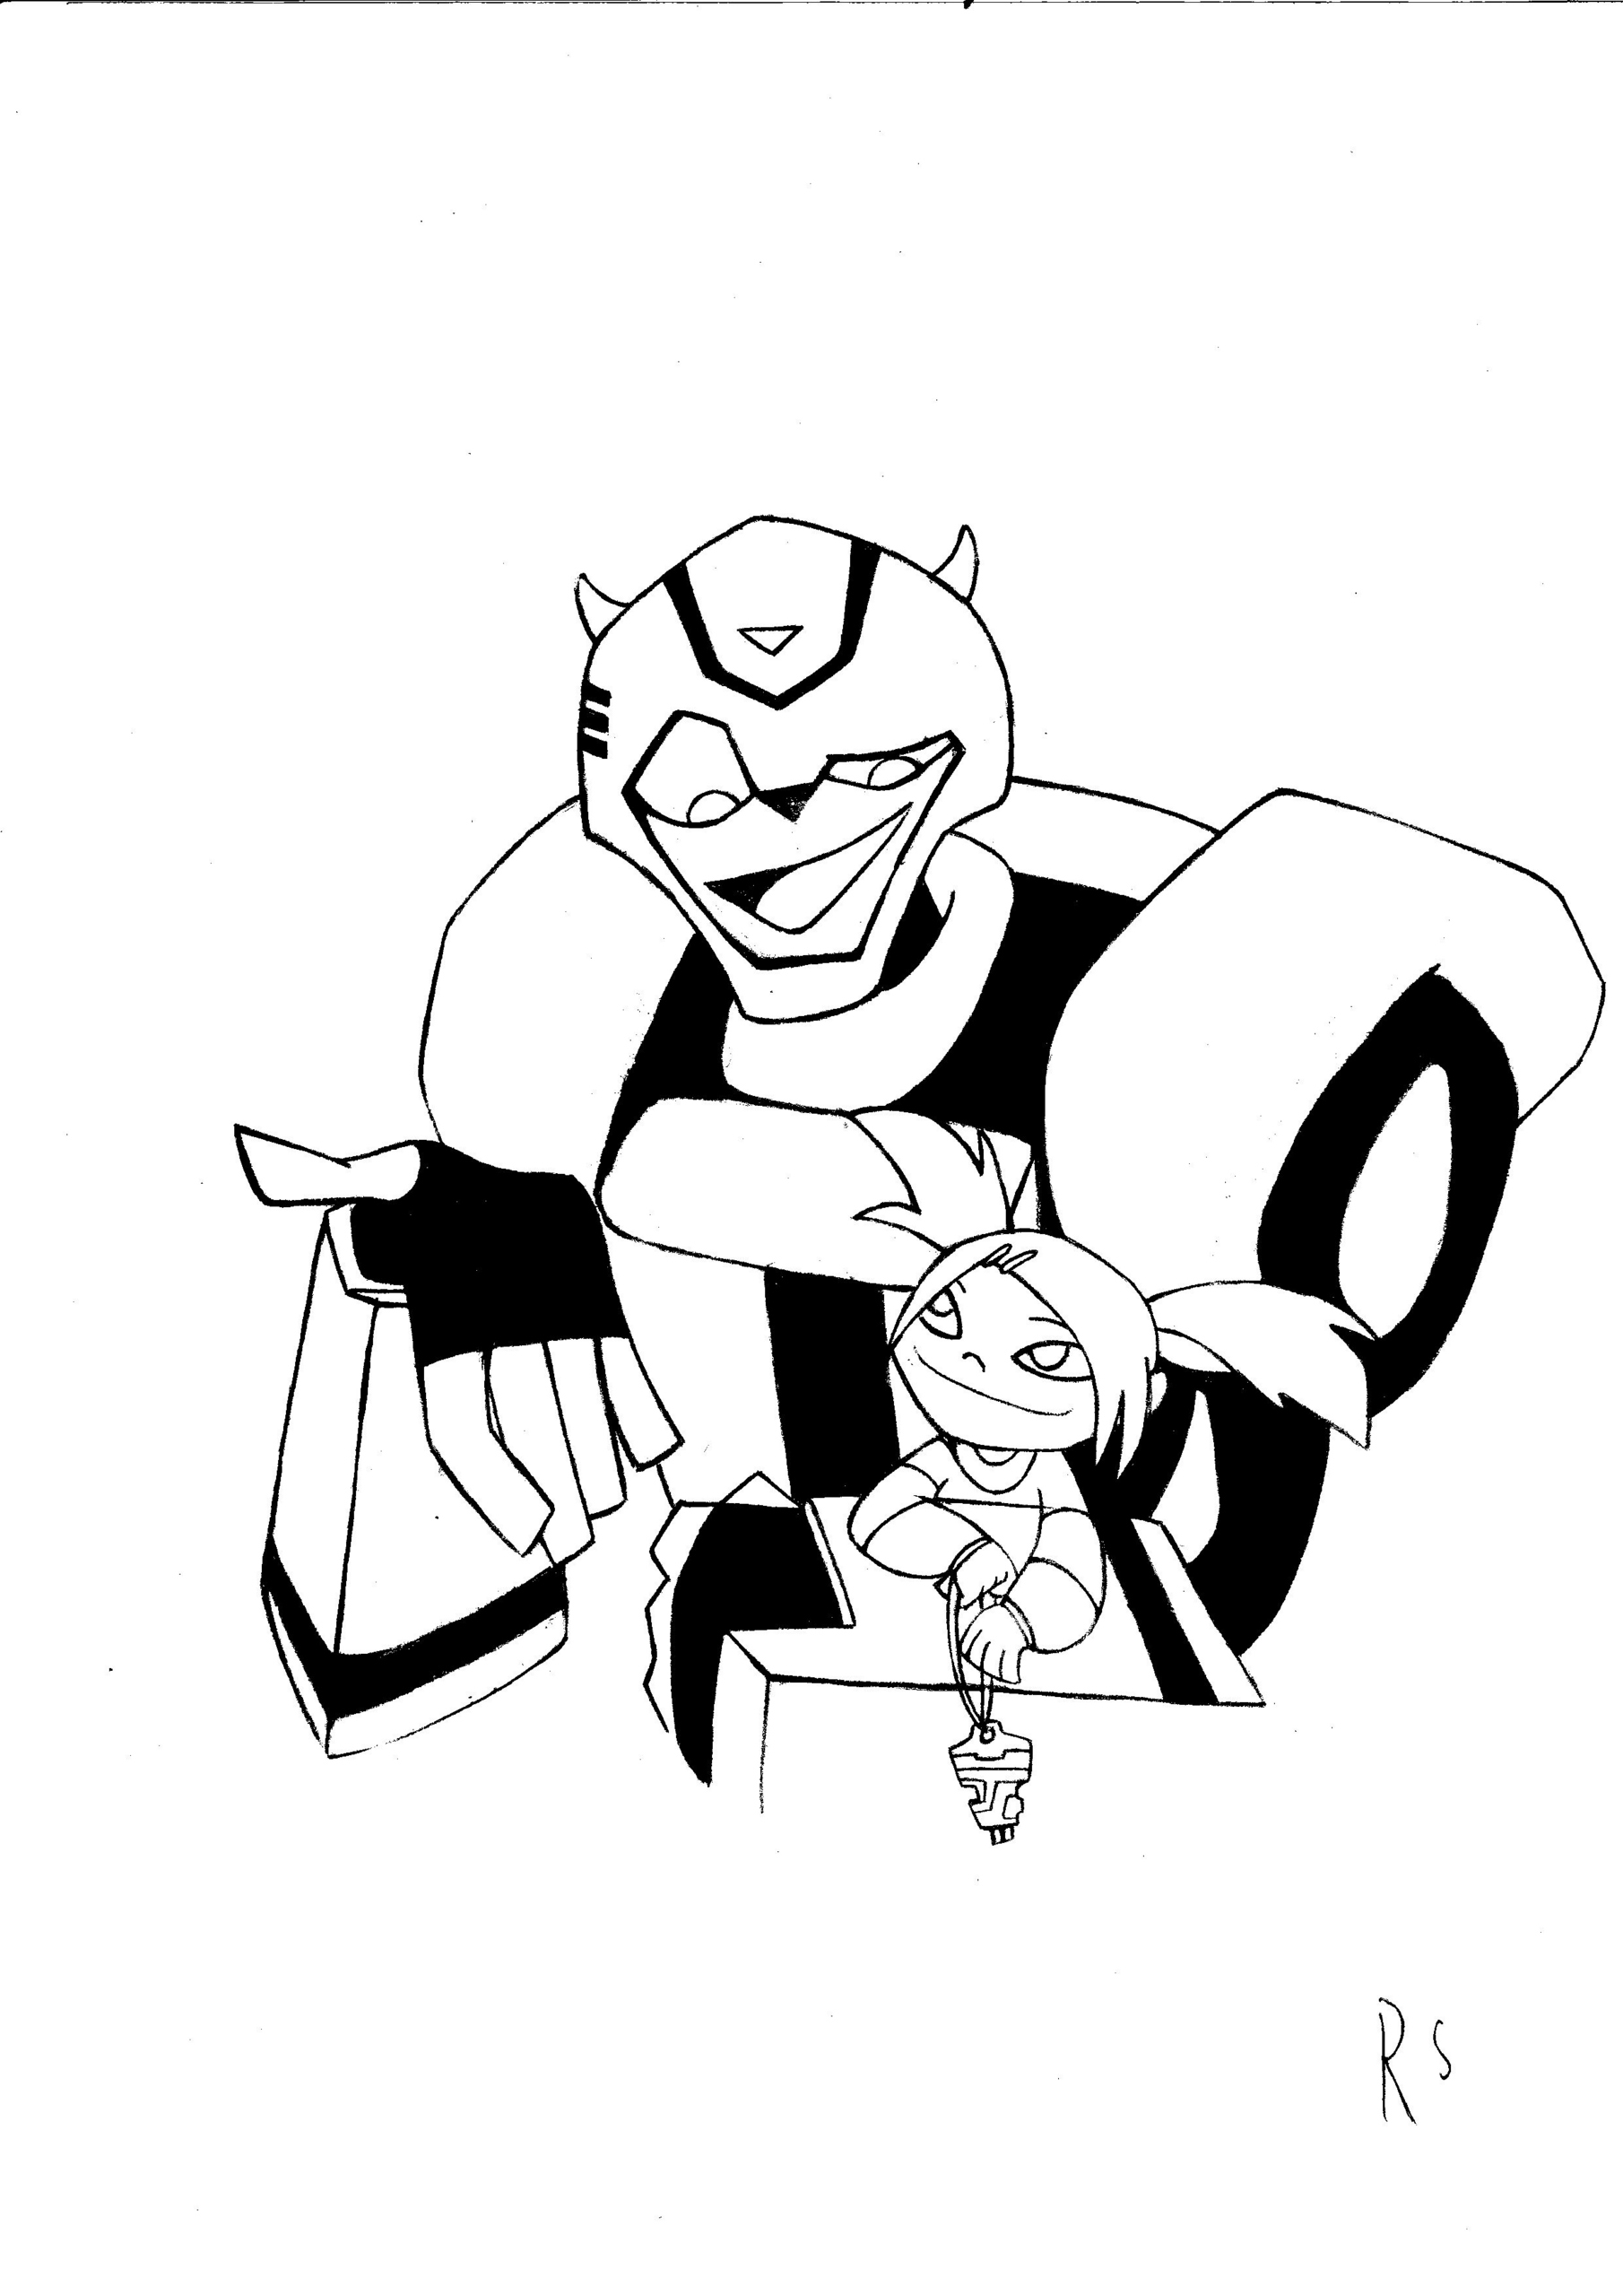 transformers barricade coloring pages transformers lockdown coloring page free coloring pages coloring pages barricade transformers